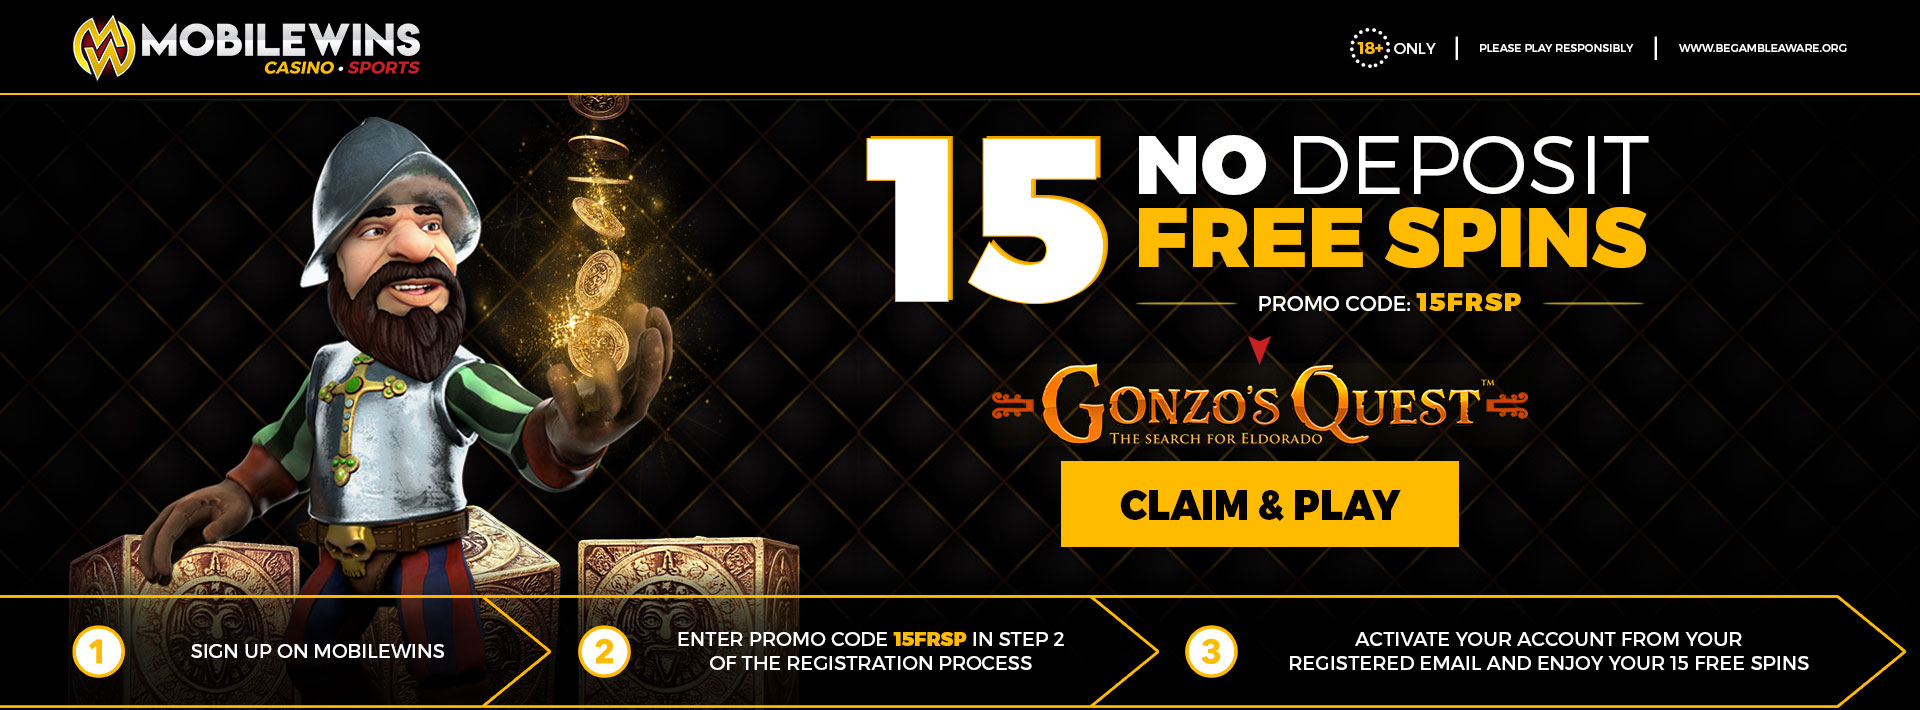 Promotion 15 No Deposit Free Spins